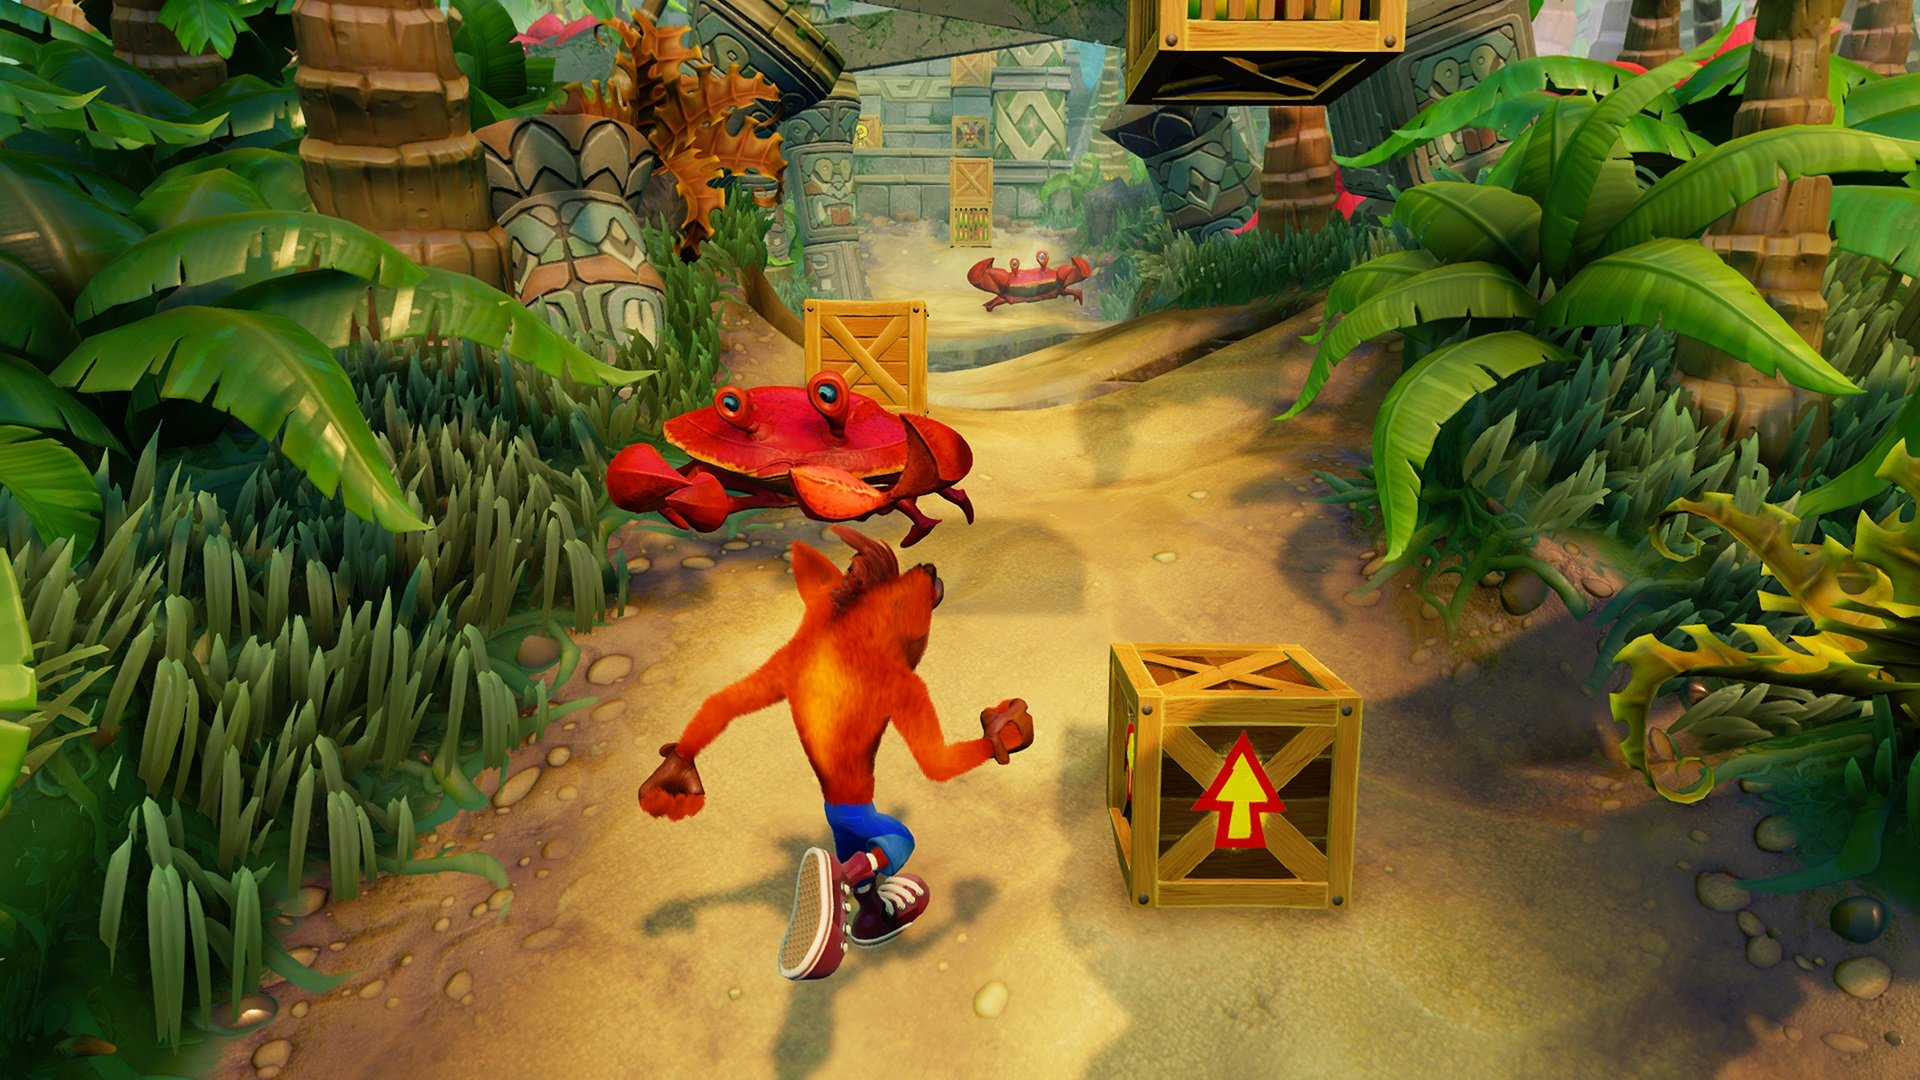 Crash Bandicoot N. Sane Trilogy remastered